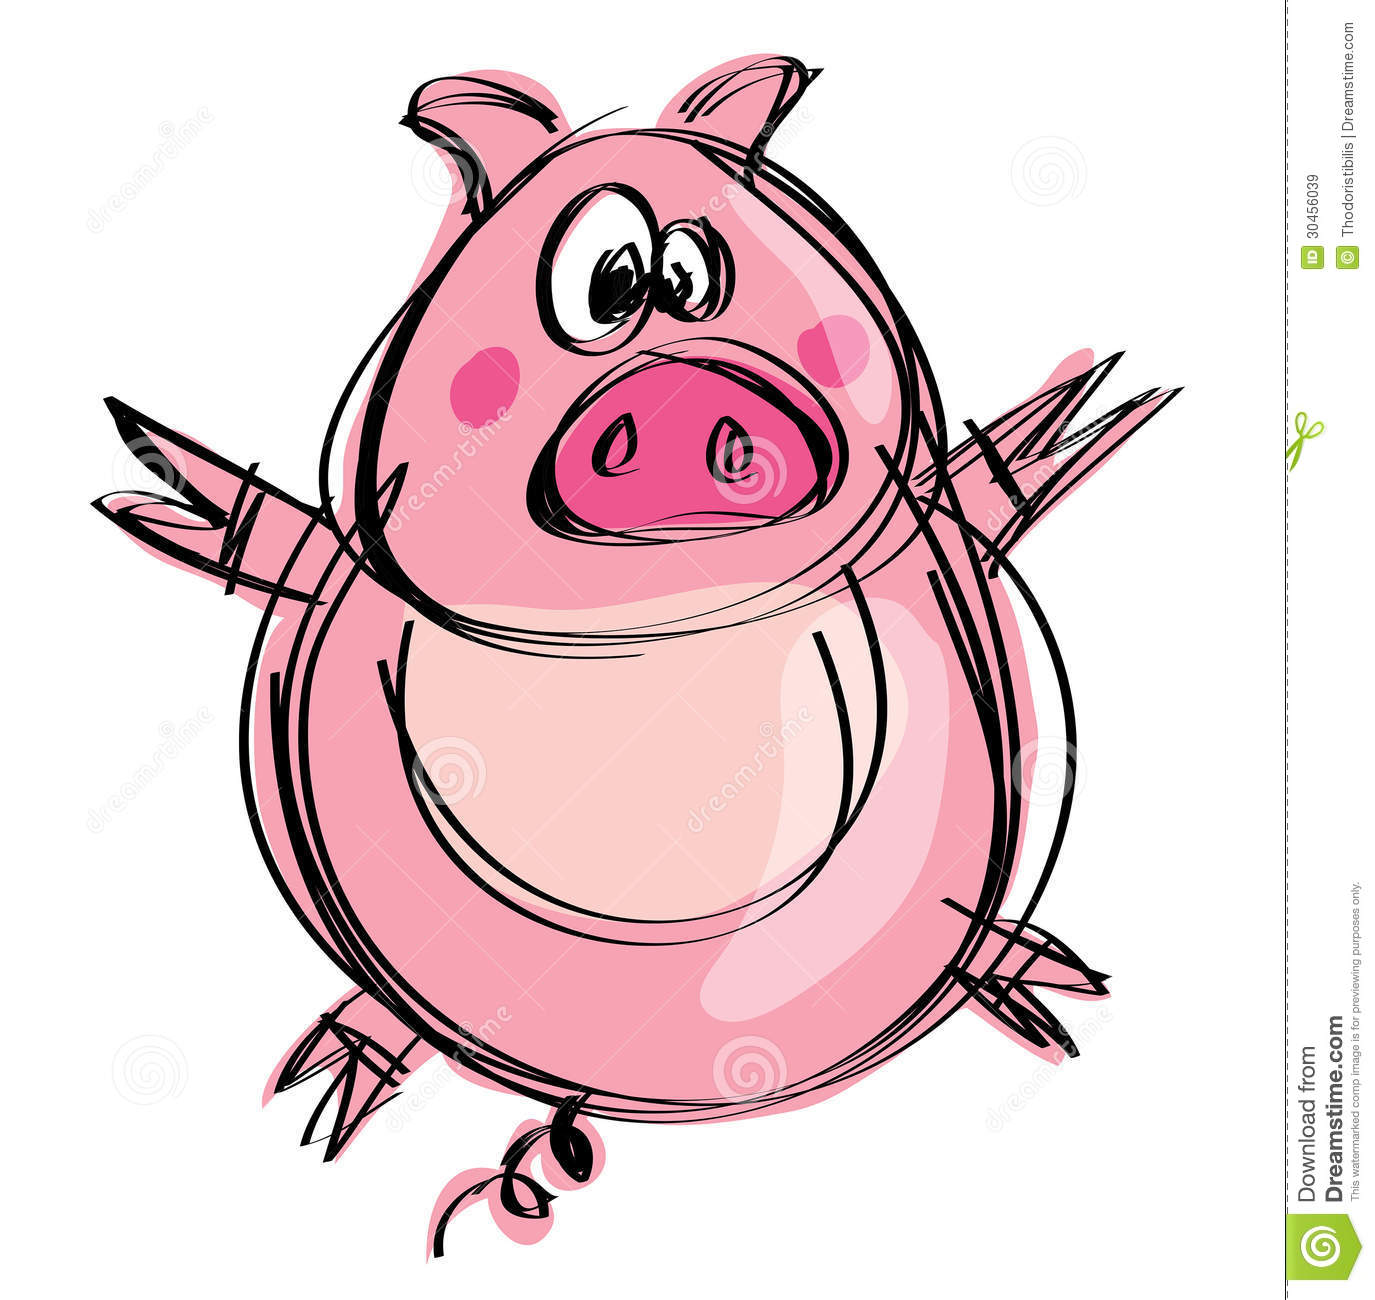 Uncategorized Baby Pig Drawing cartoon naif baby pig in a childish drawing style stock royalty free photo download pig